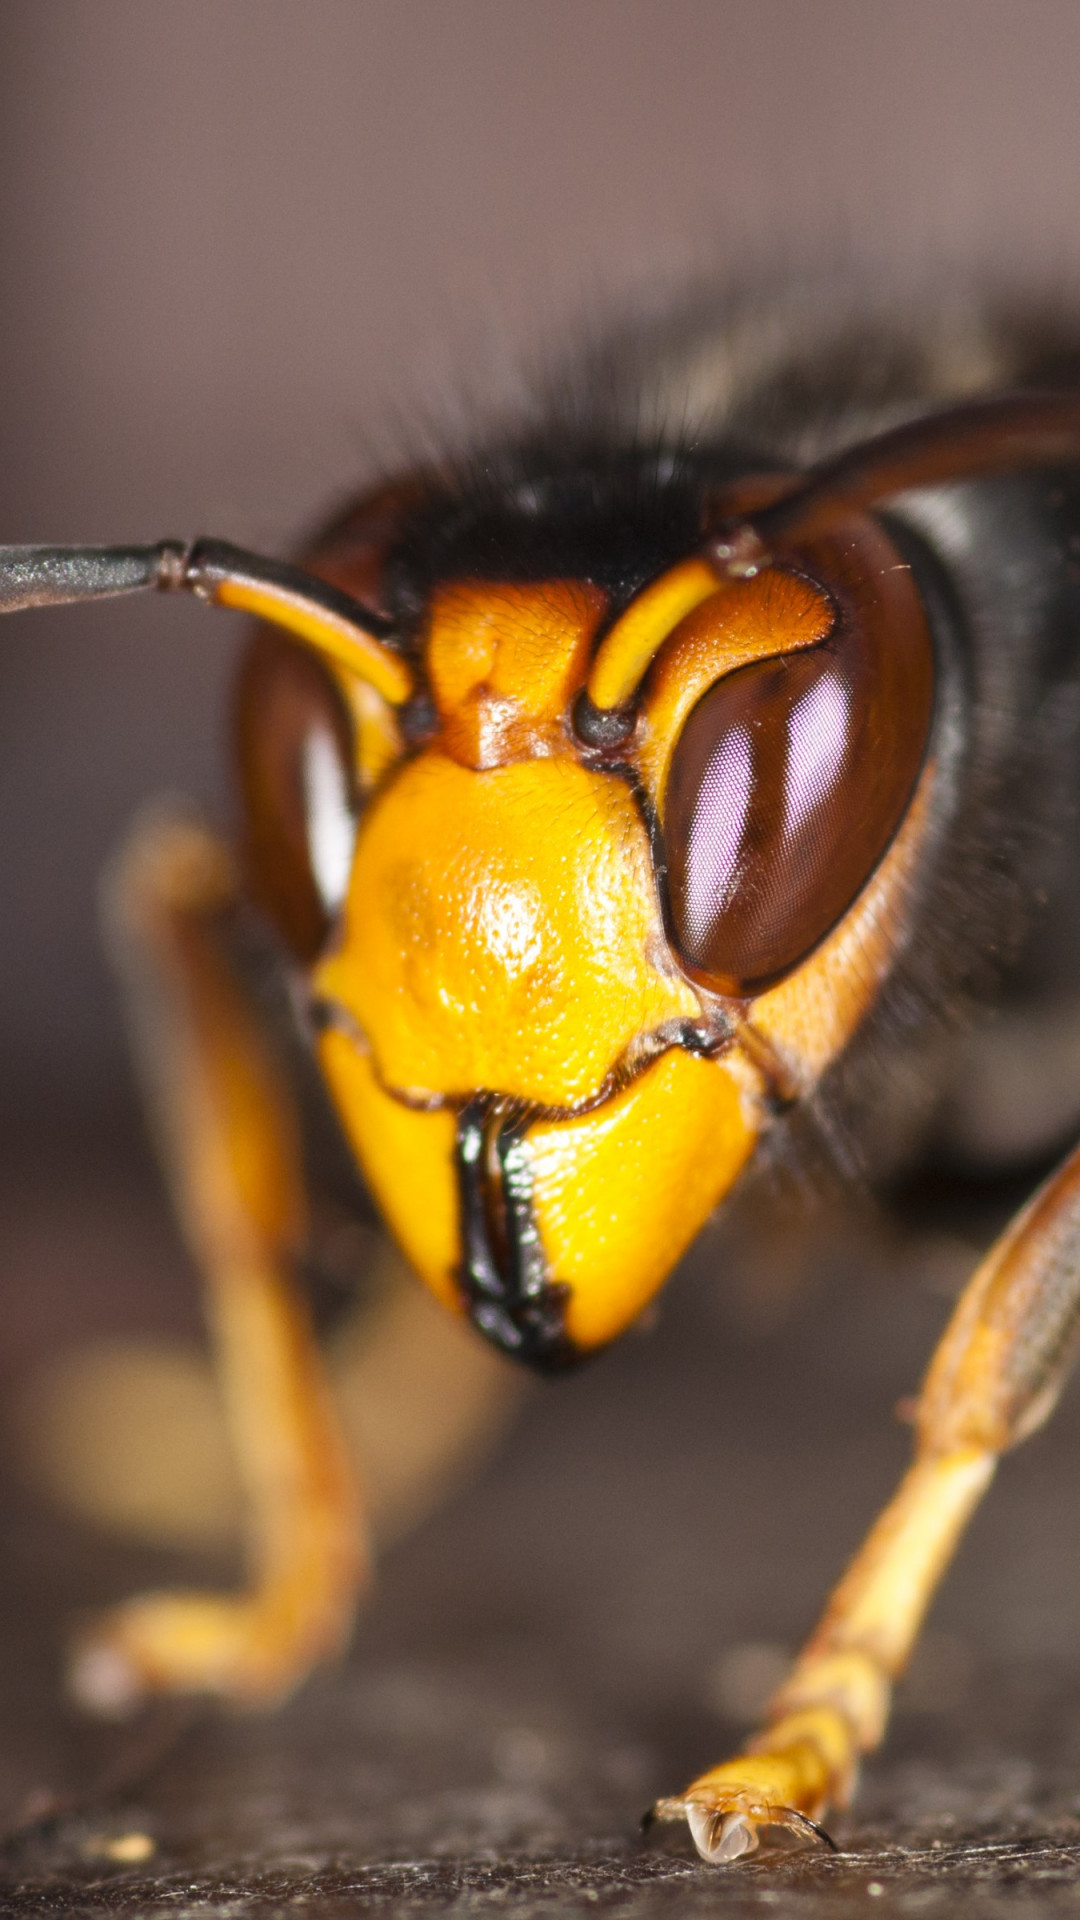 Asian hornet wallpaper 1080x1920